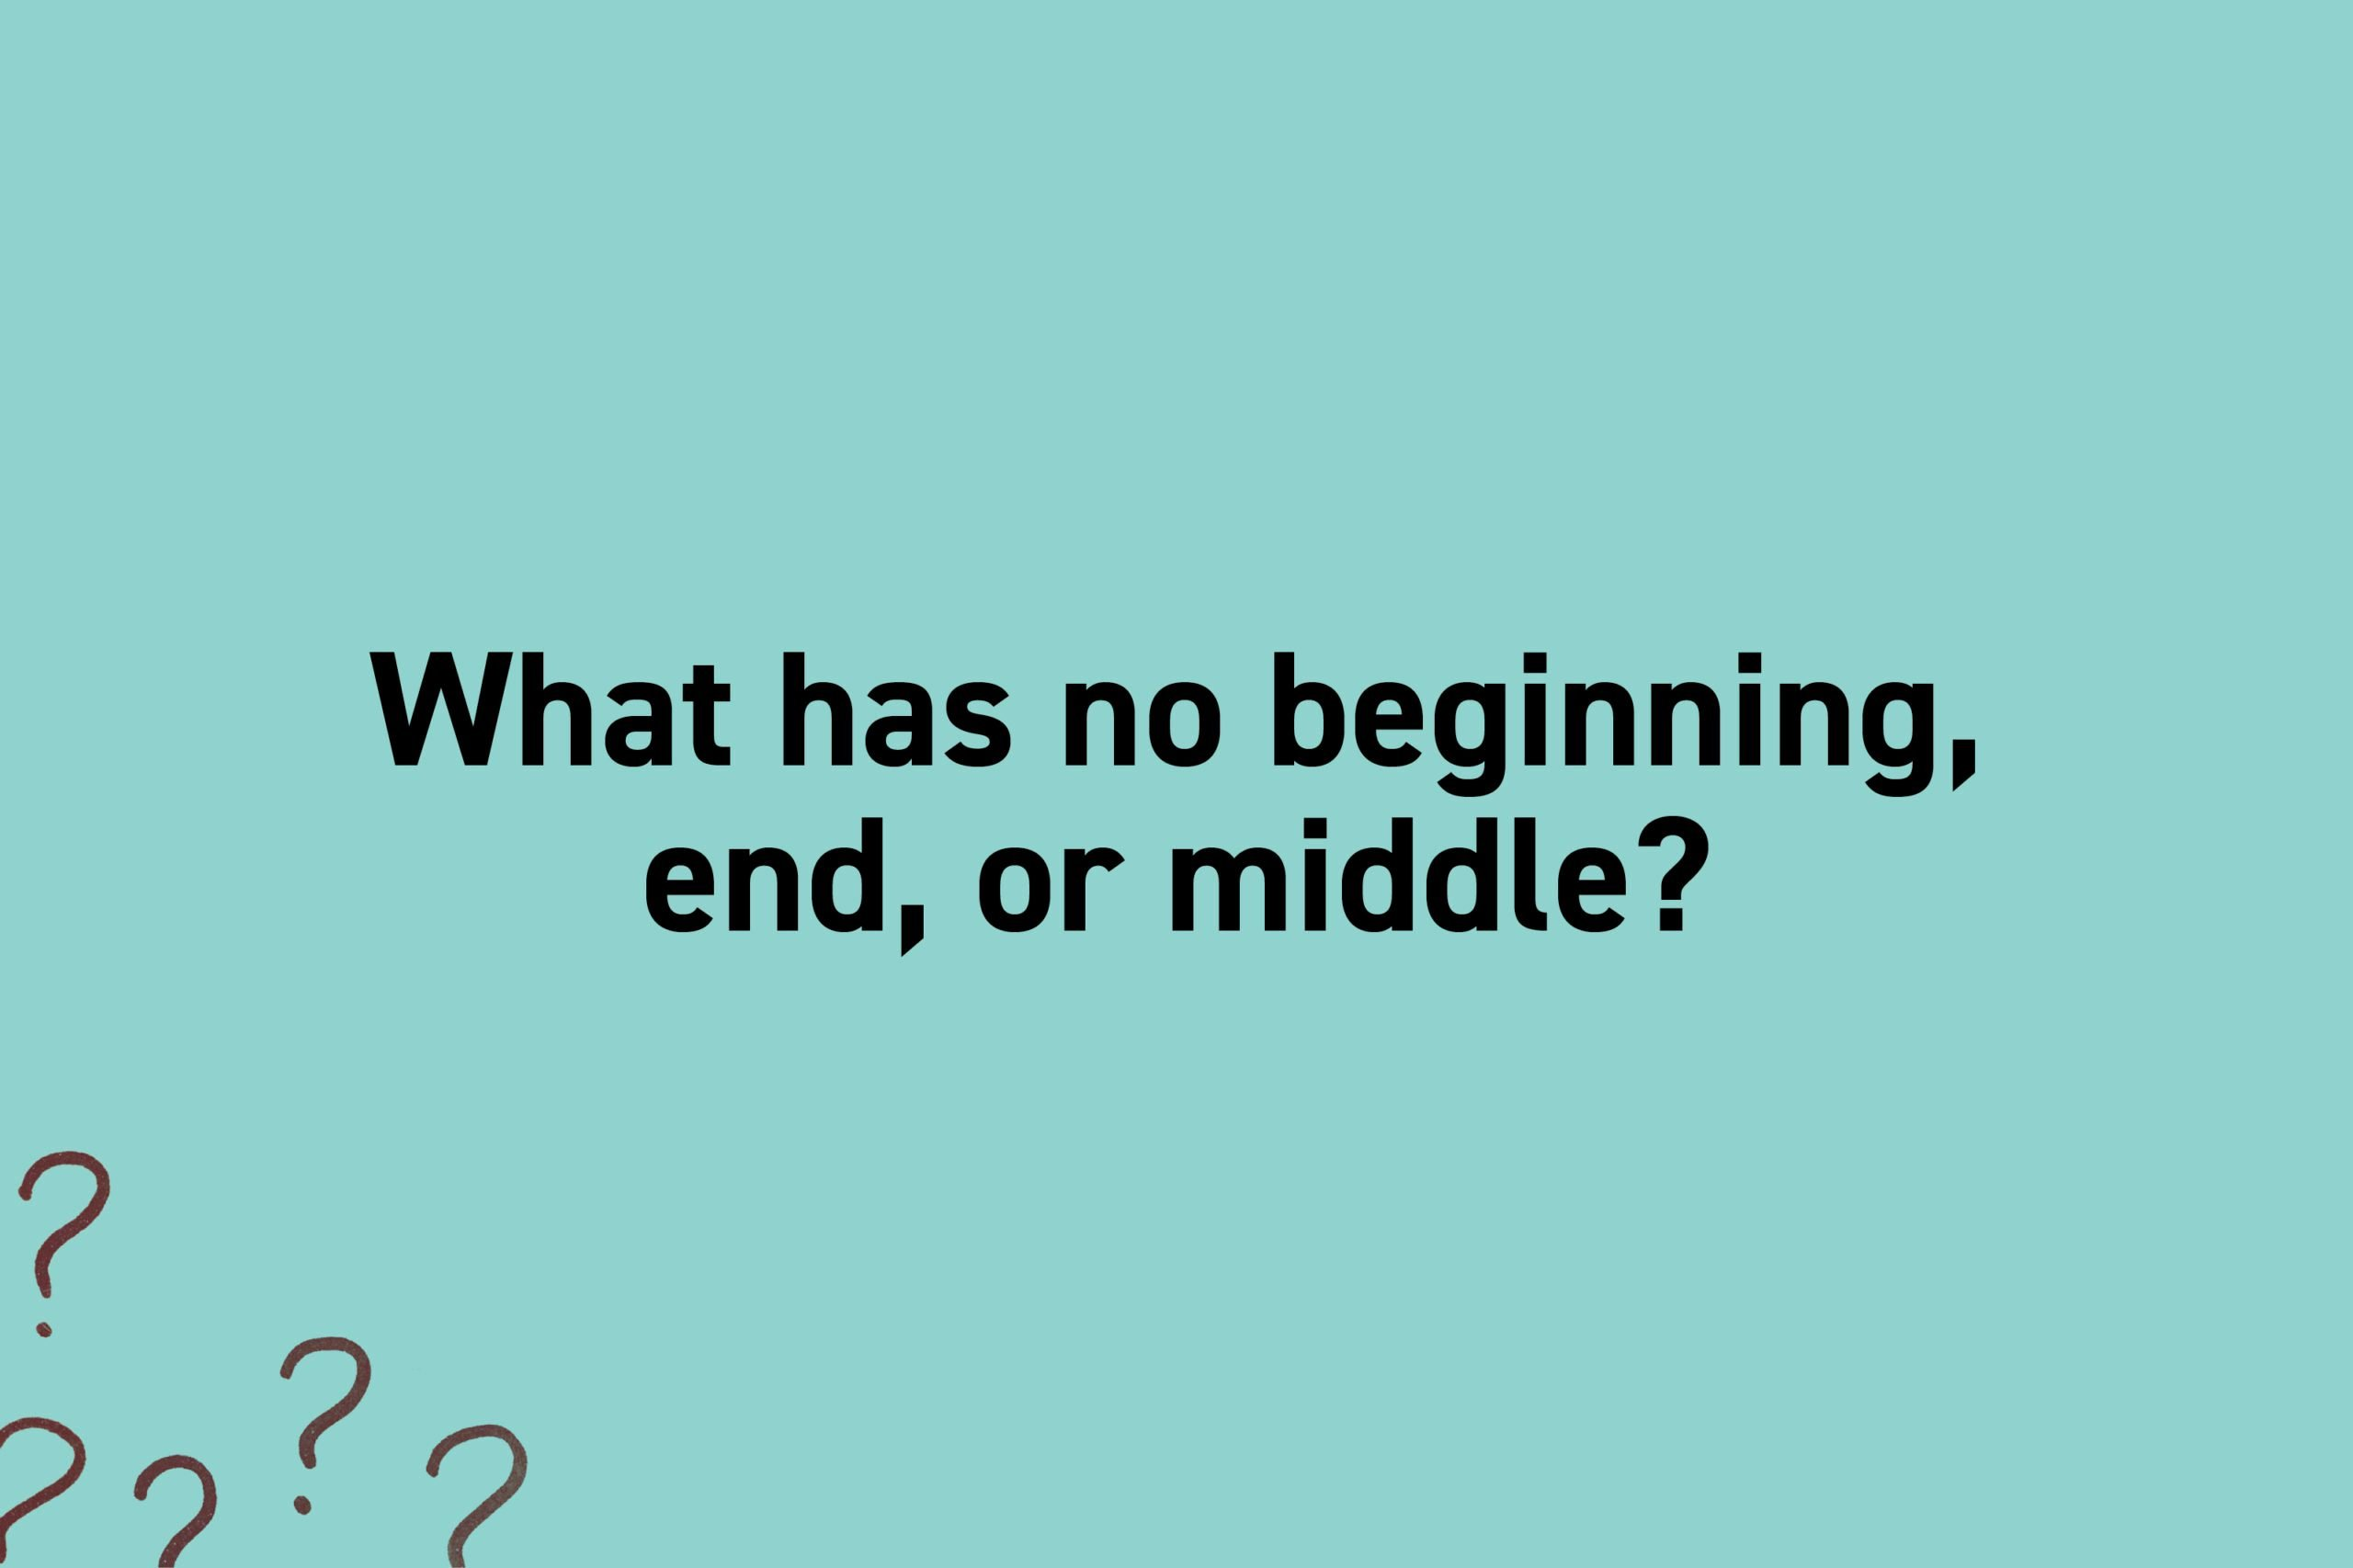 What has no beginning, end, or middle?